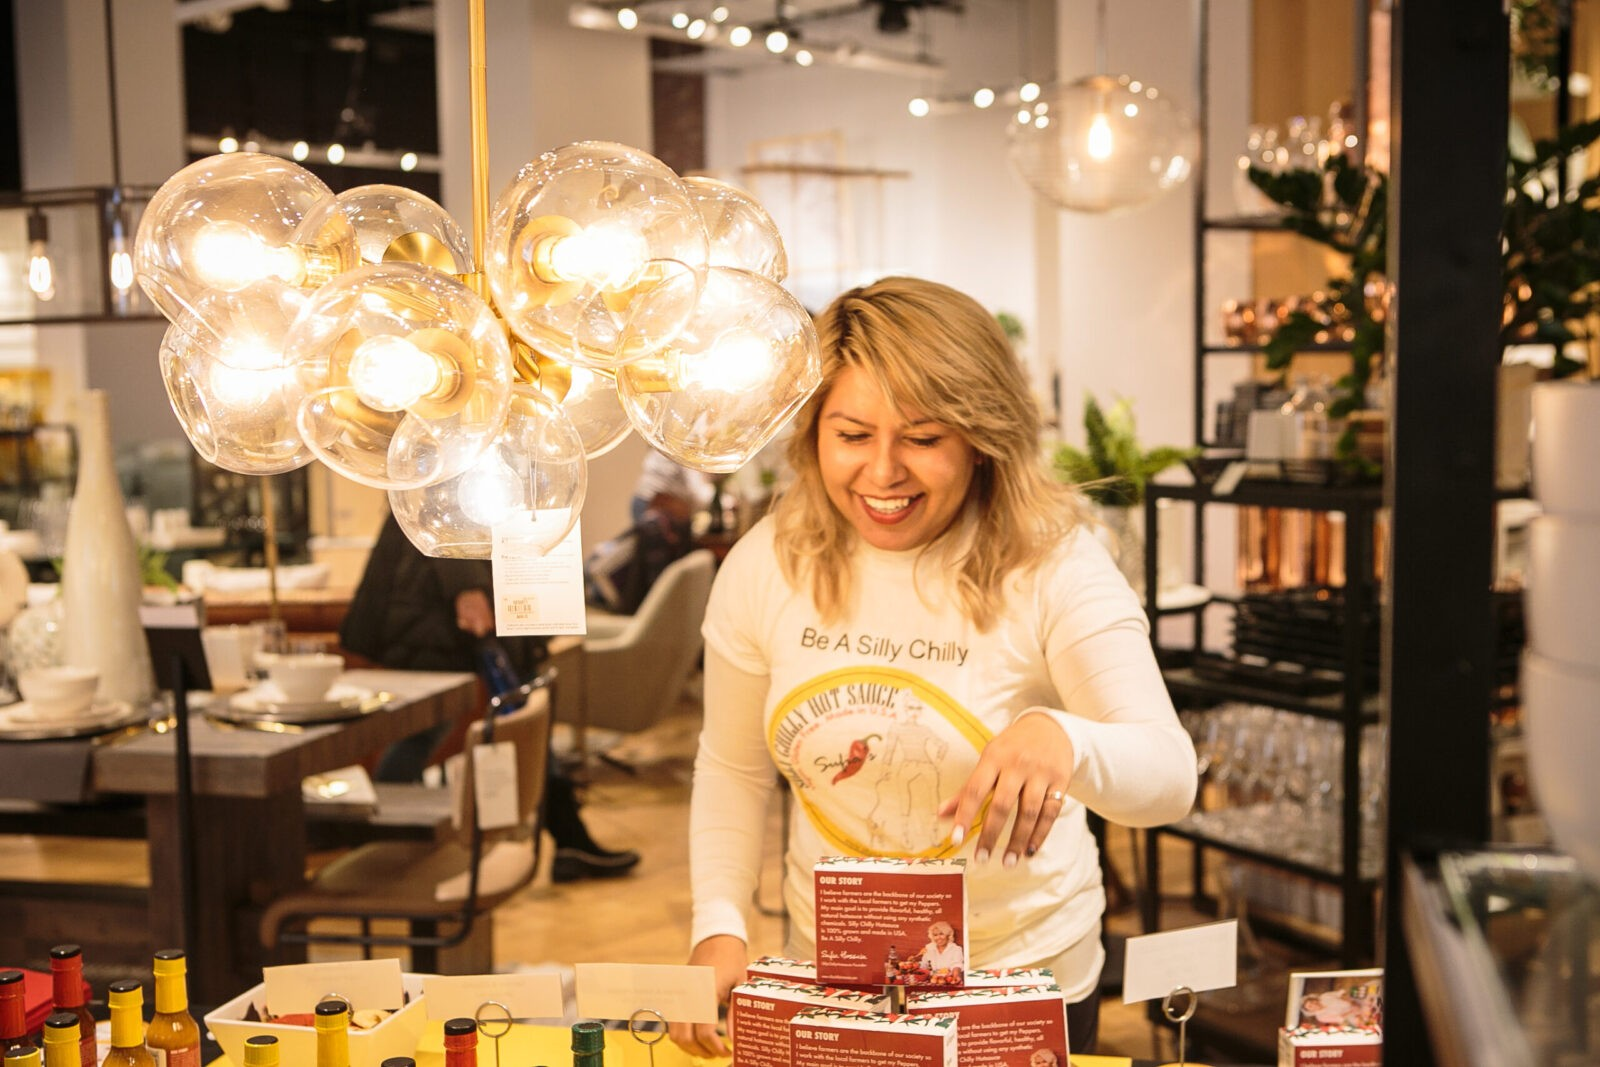 Sufia Hossain, a woman with medium skin and blonde hair, smiles as she arranges a box of hot sauce inside a store, beside a brightly lit lighting fixture